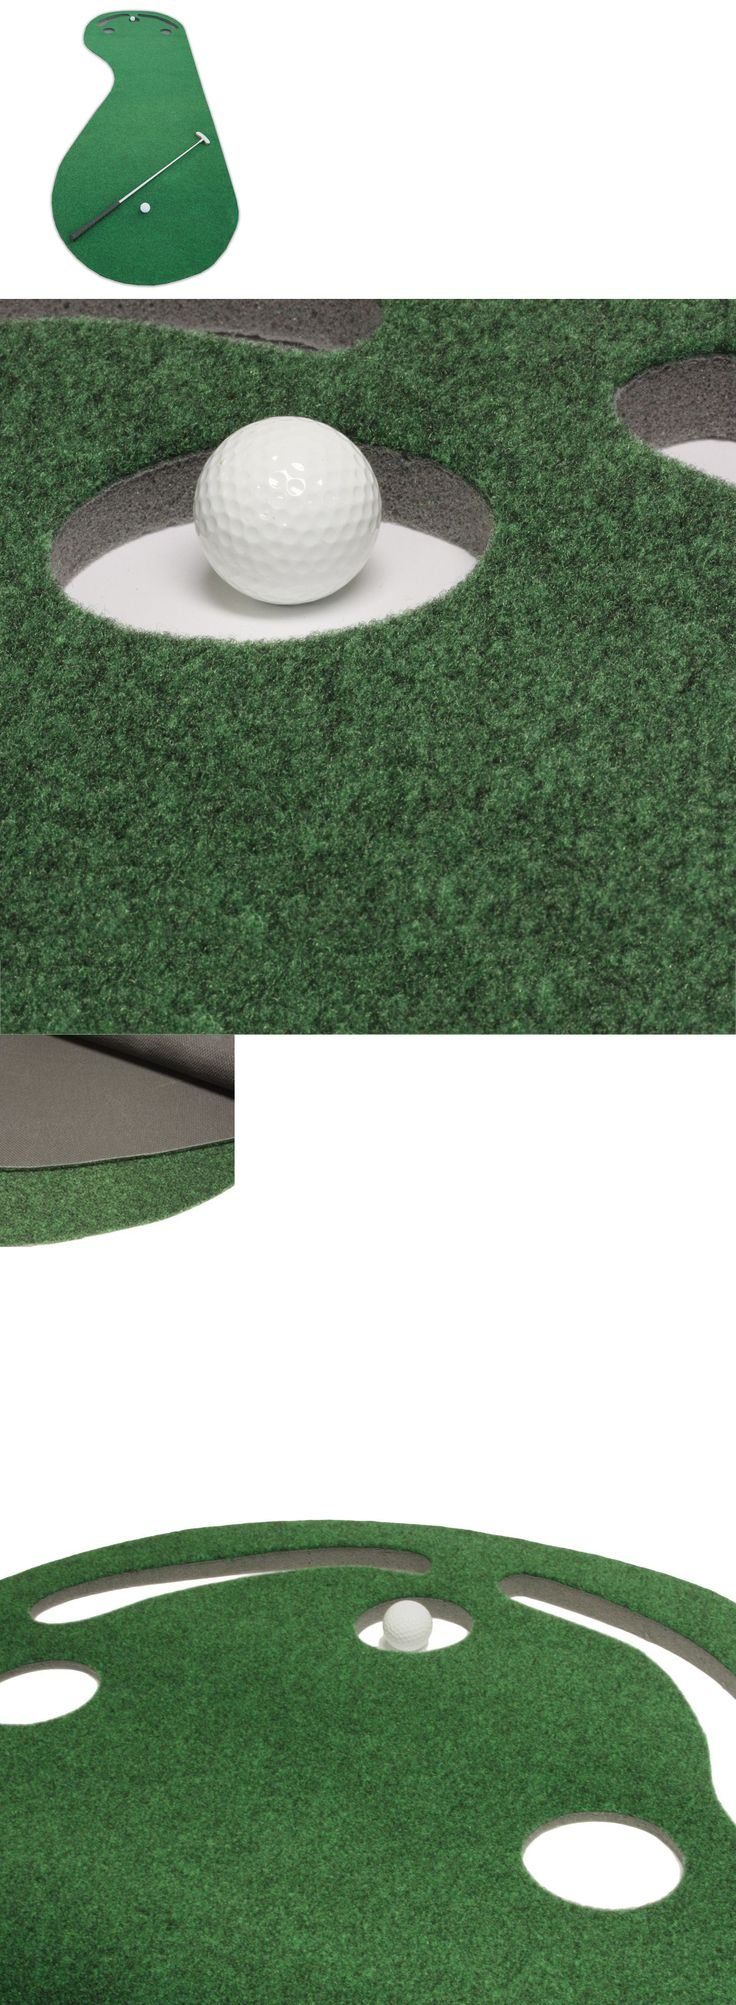 Nets Cages and Mats 50876: Indoor Golf Simulator Practice Putting Green Mat Game Par 3 Holes Training Aid BUY IT NOW ONLY: $59.95